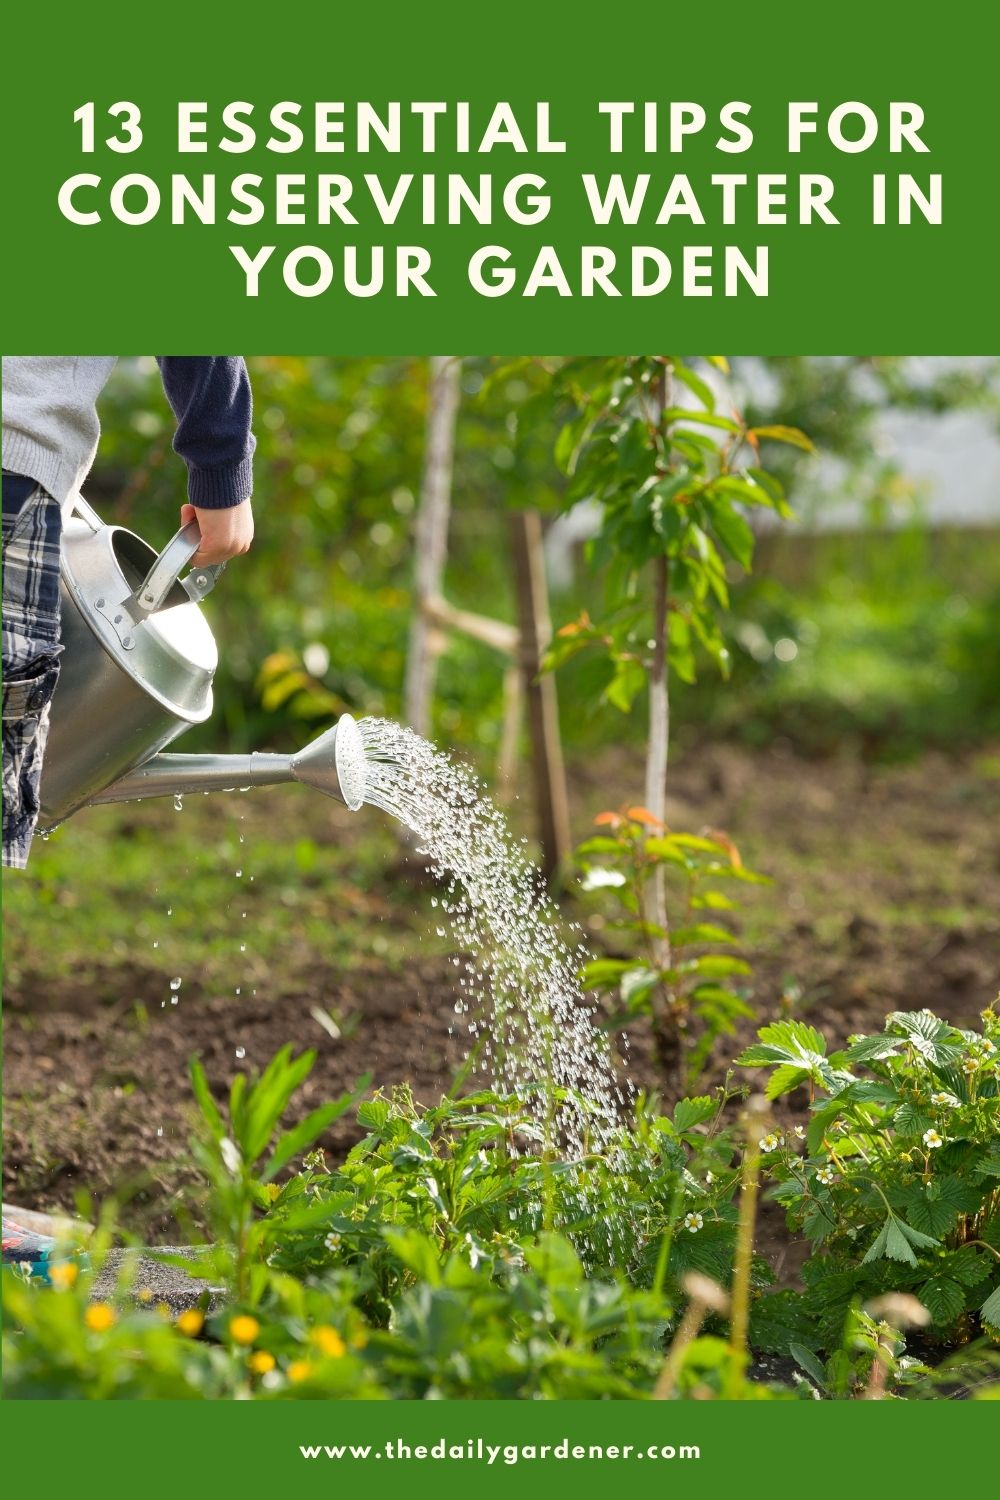 13 Essential Tips for Conserving Water In Your Garden 2